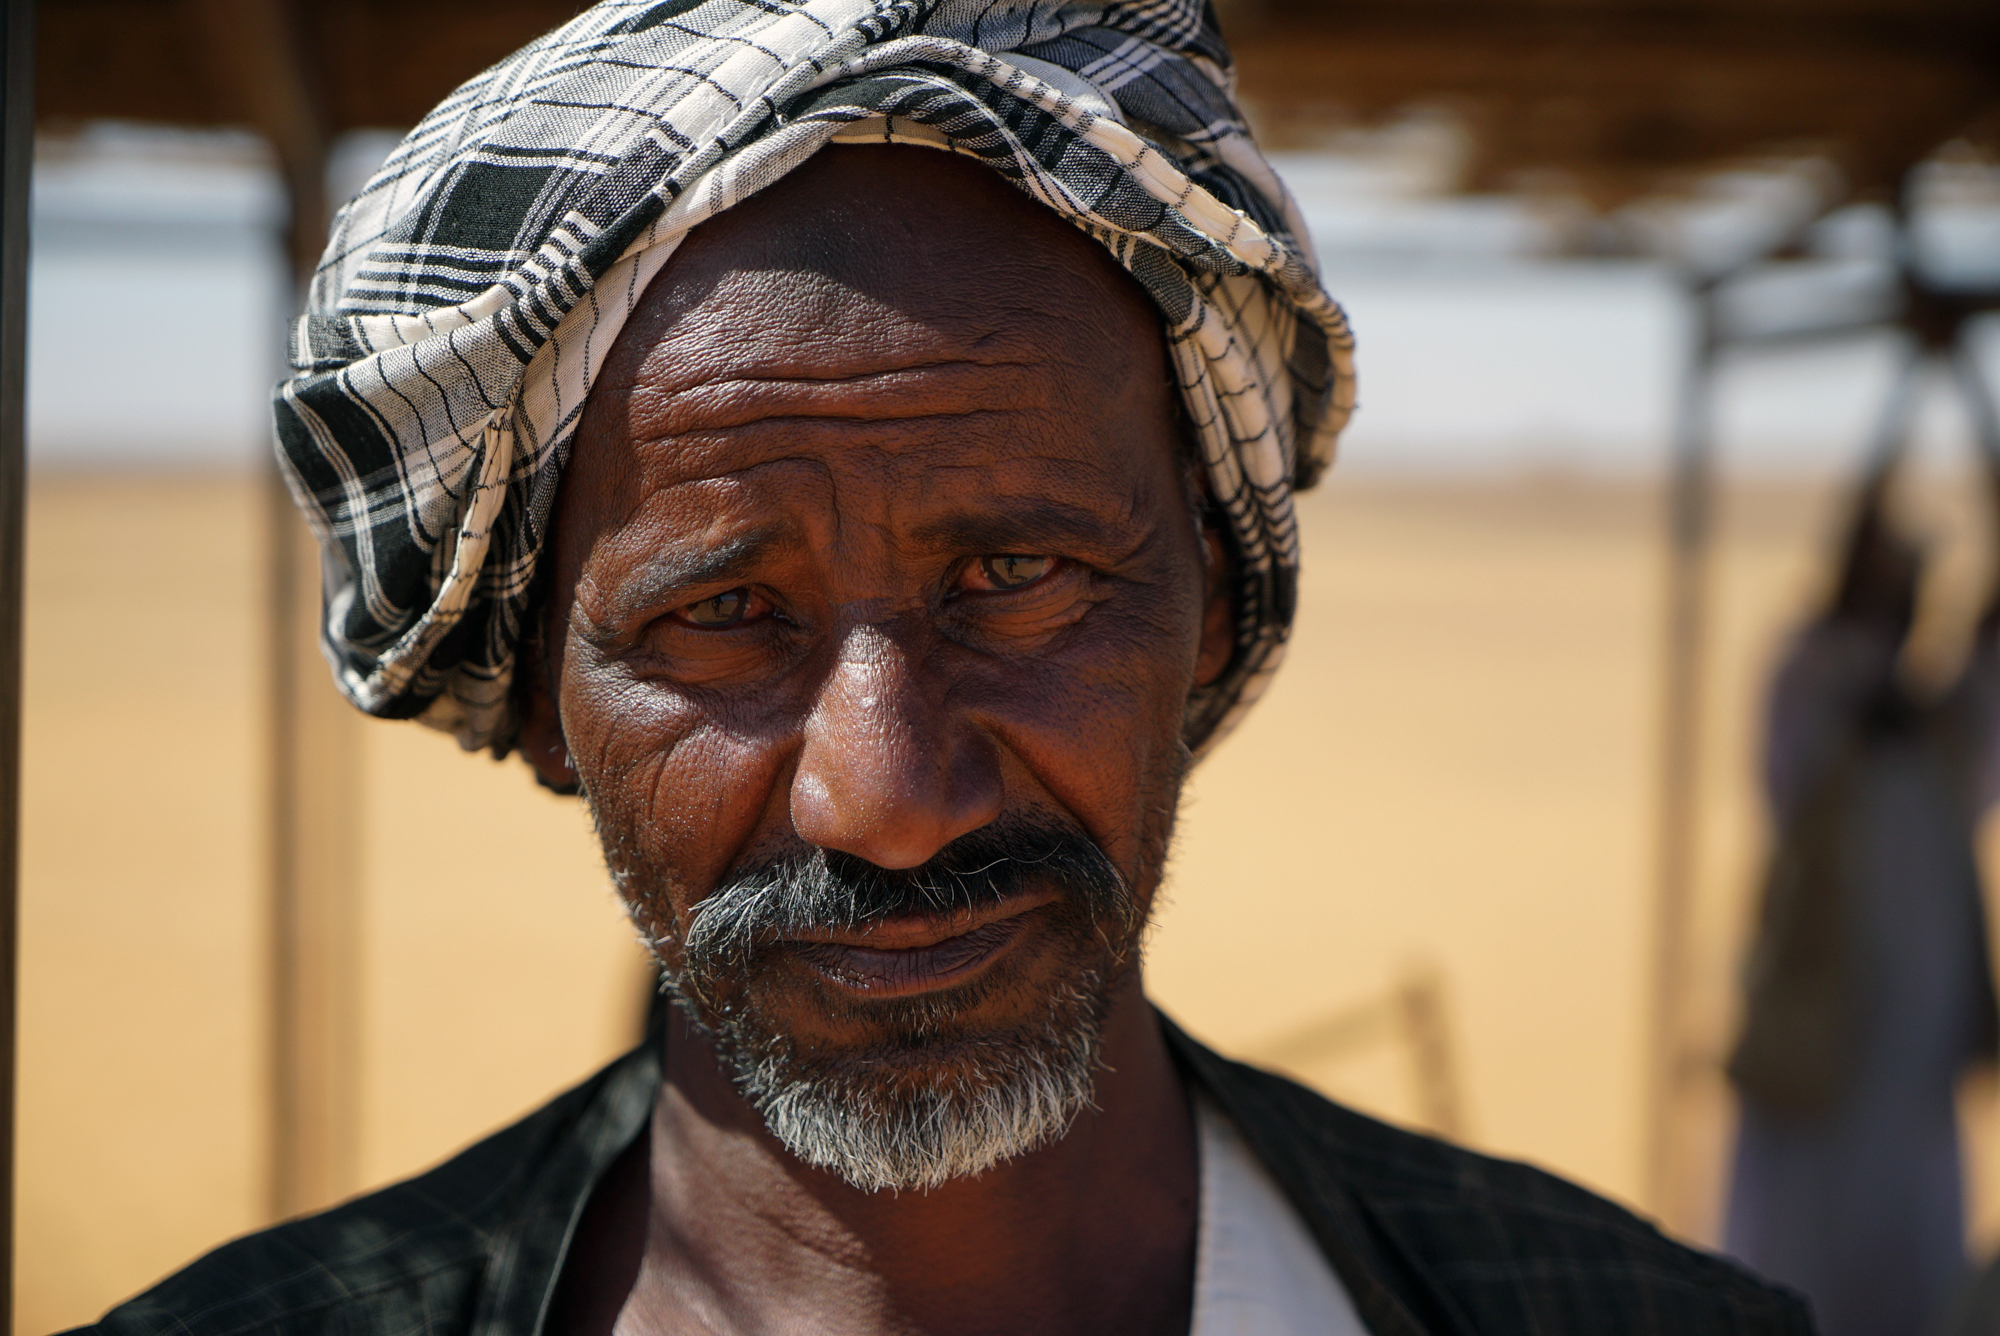 Abdullah is from Al Tarabil village, a few kilometres from the ancient burial site. 'This is our history. Here our ancestors are buried. We pay no tax for working here, but there aren't too many people coming to visit lately,' he said. In a good day he makes $10 to $16 offering tourists camel rides. [Sorin Furcoi/Al Jazeera]